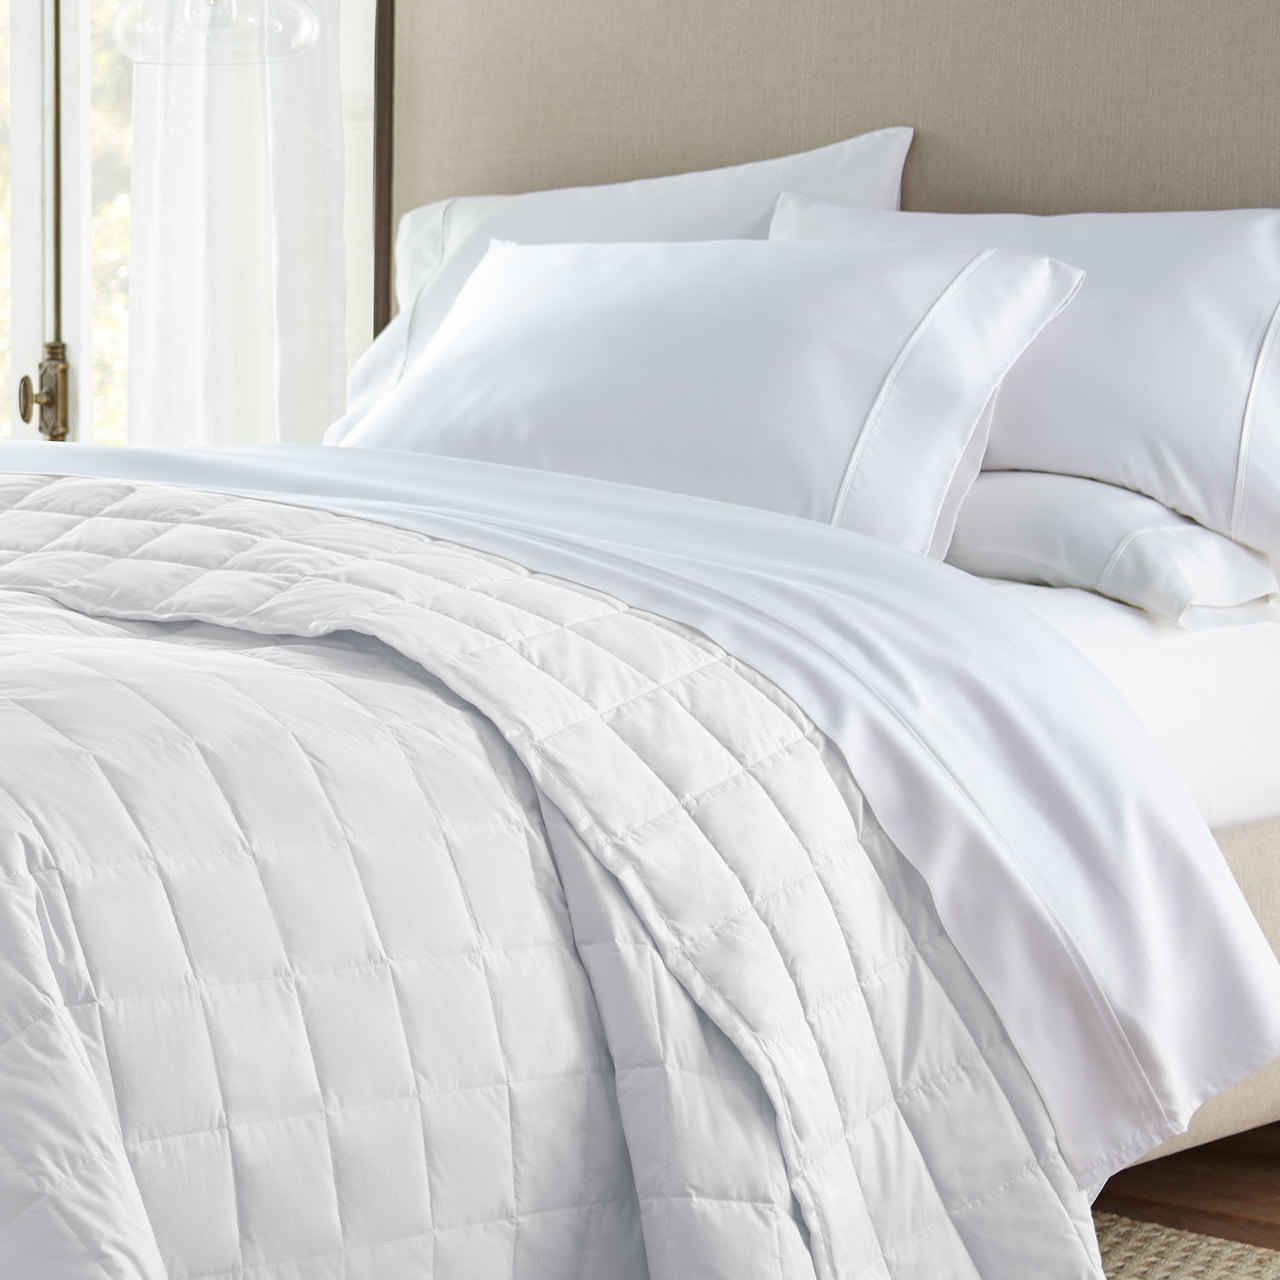 stearns foster 600 thread count primacool sheet set taupe color queen size only